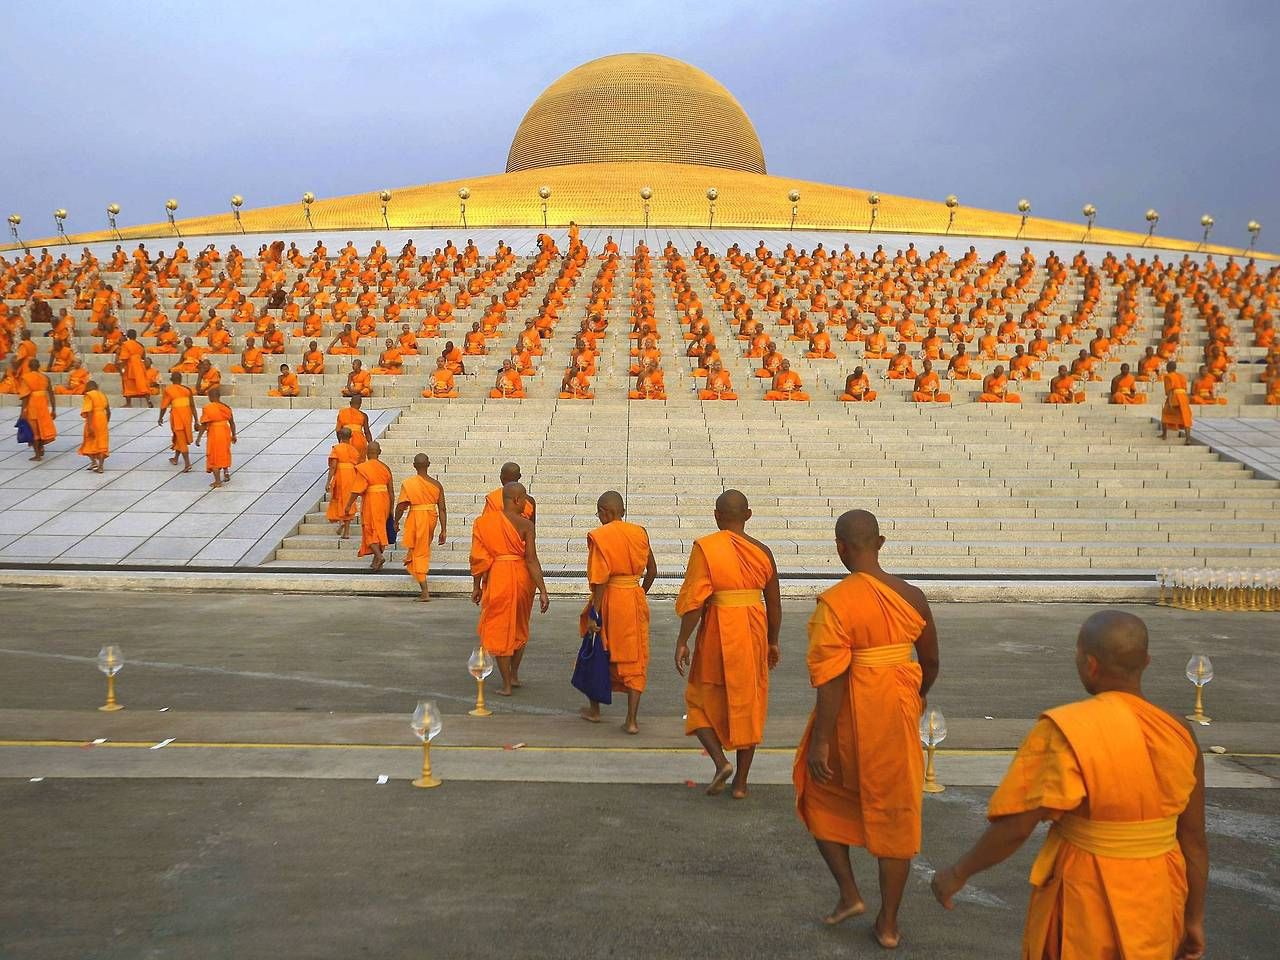 Buddhist Monks Going For Prayer At The Wat Phra Dhammakaya Temple In